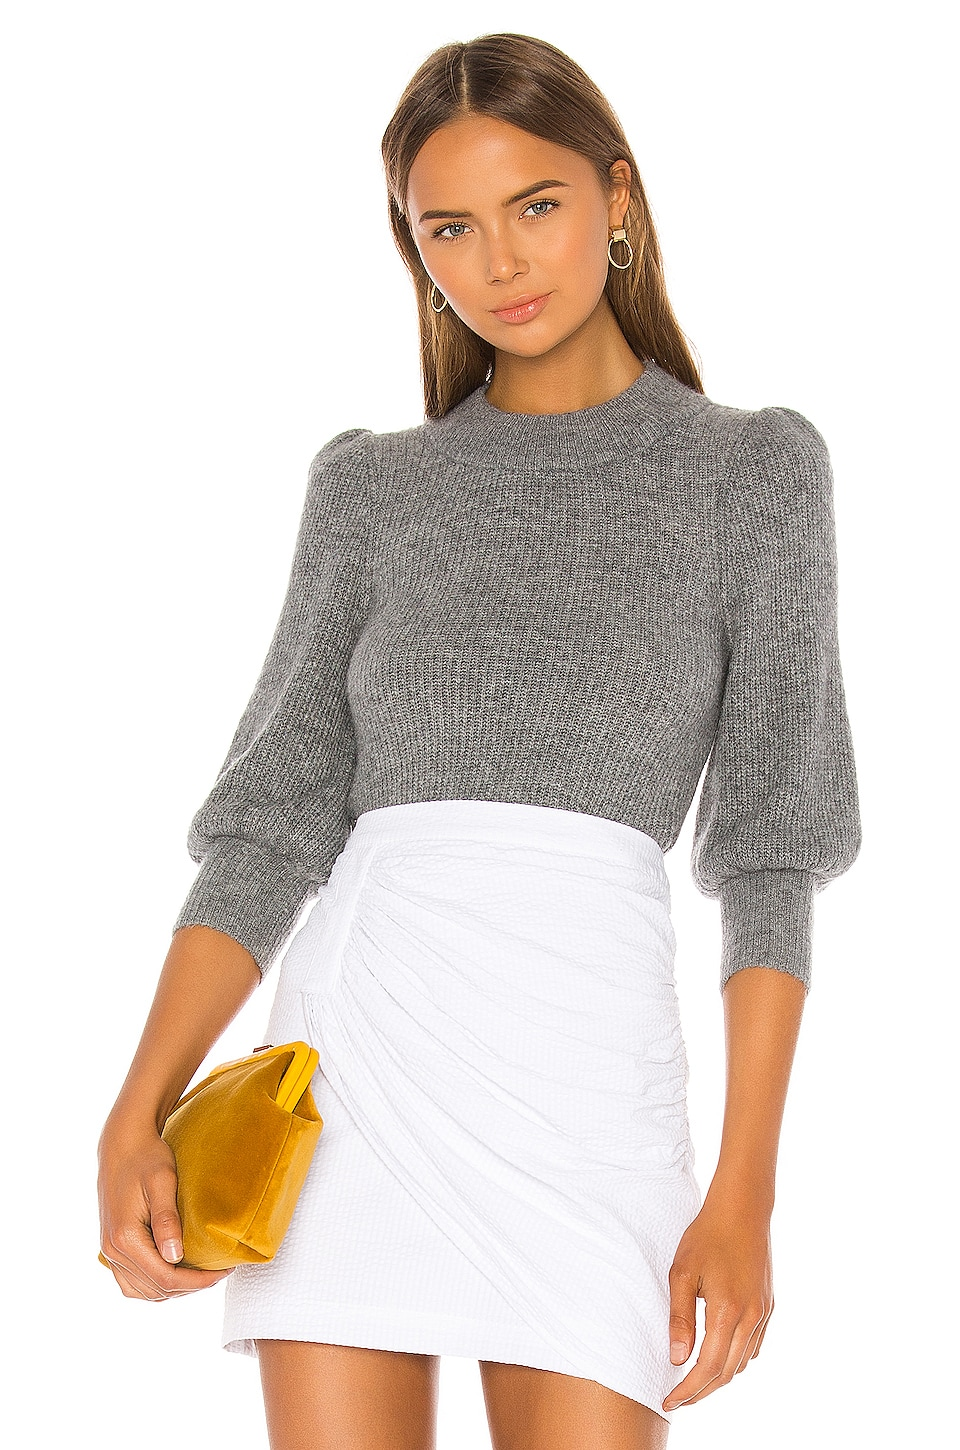 L'Academie Eno Sweater in Charcoal Grey